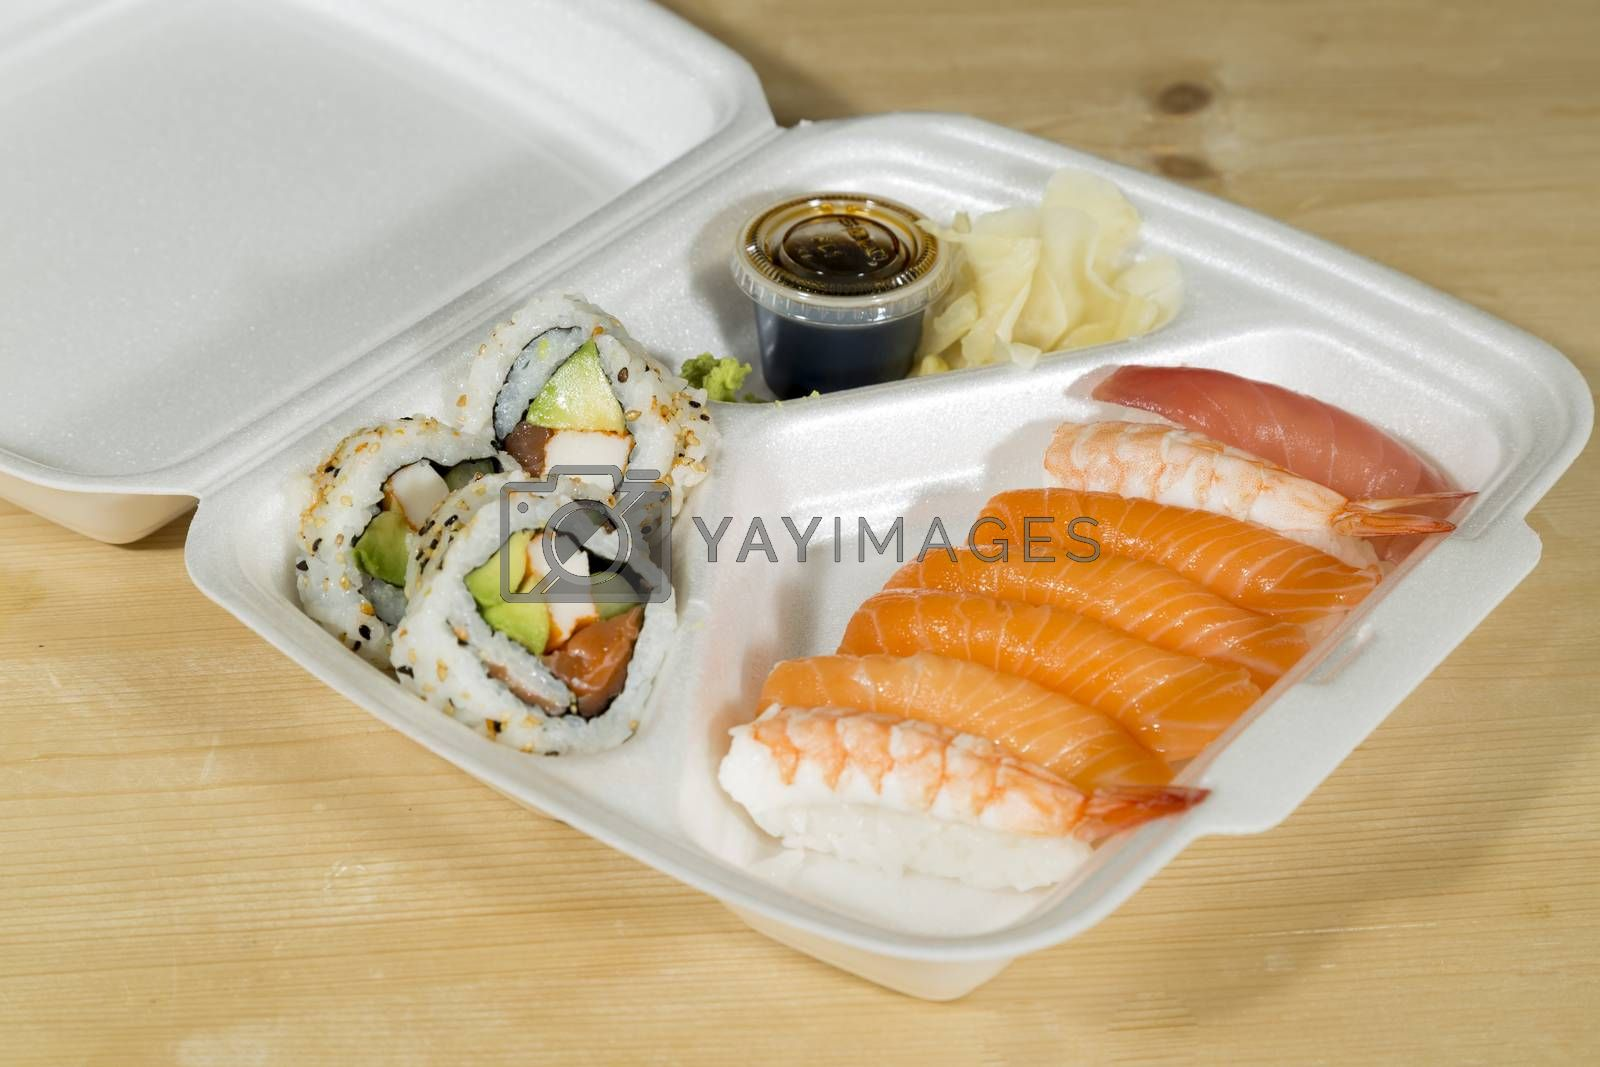 Fast Food Sushi in its box on wooden table.